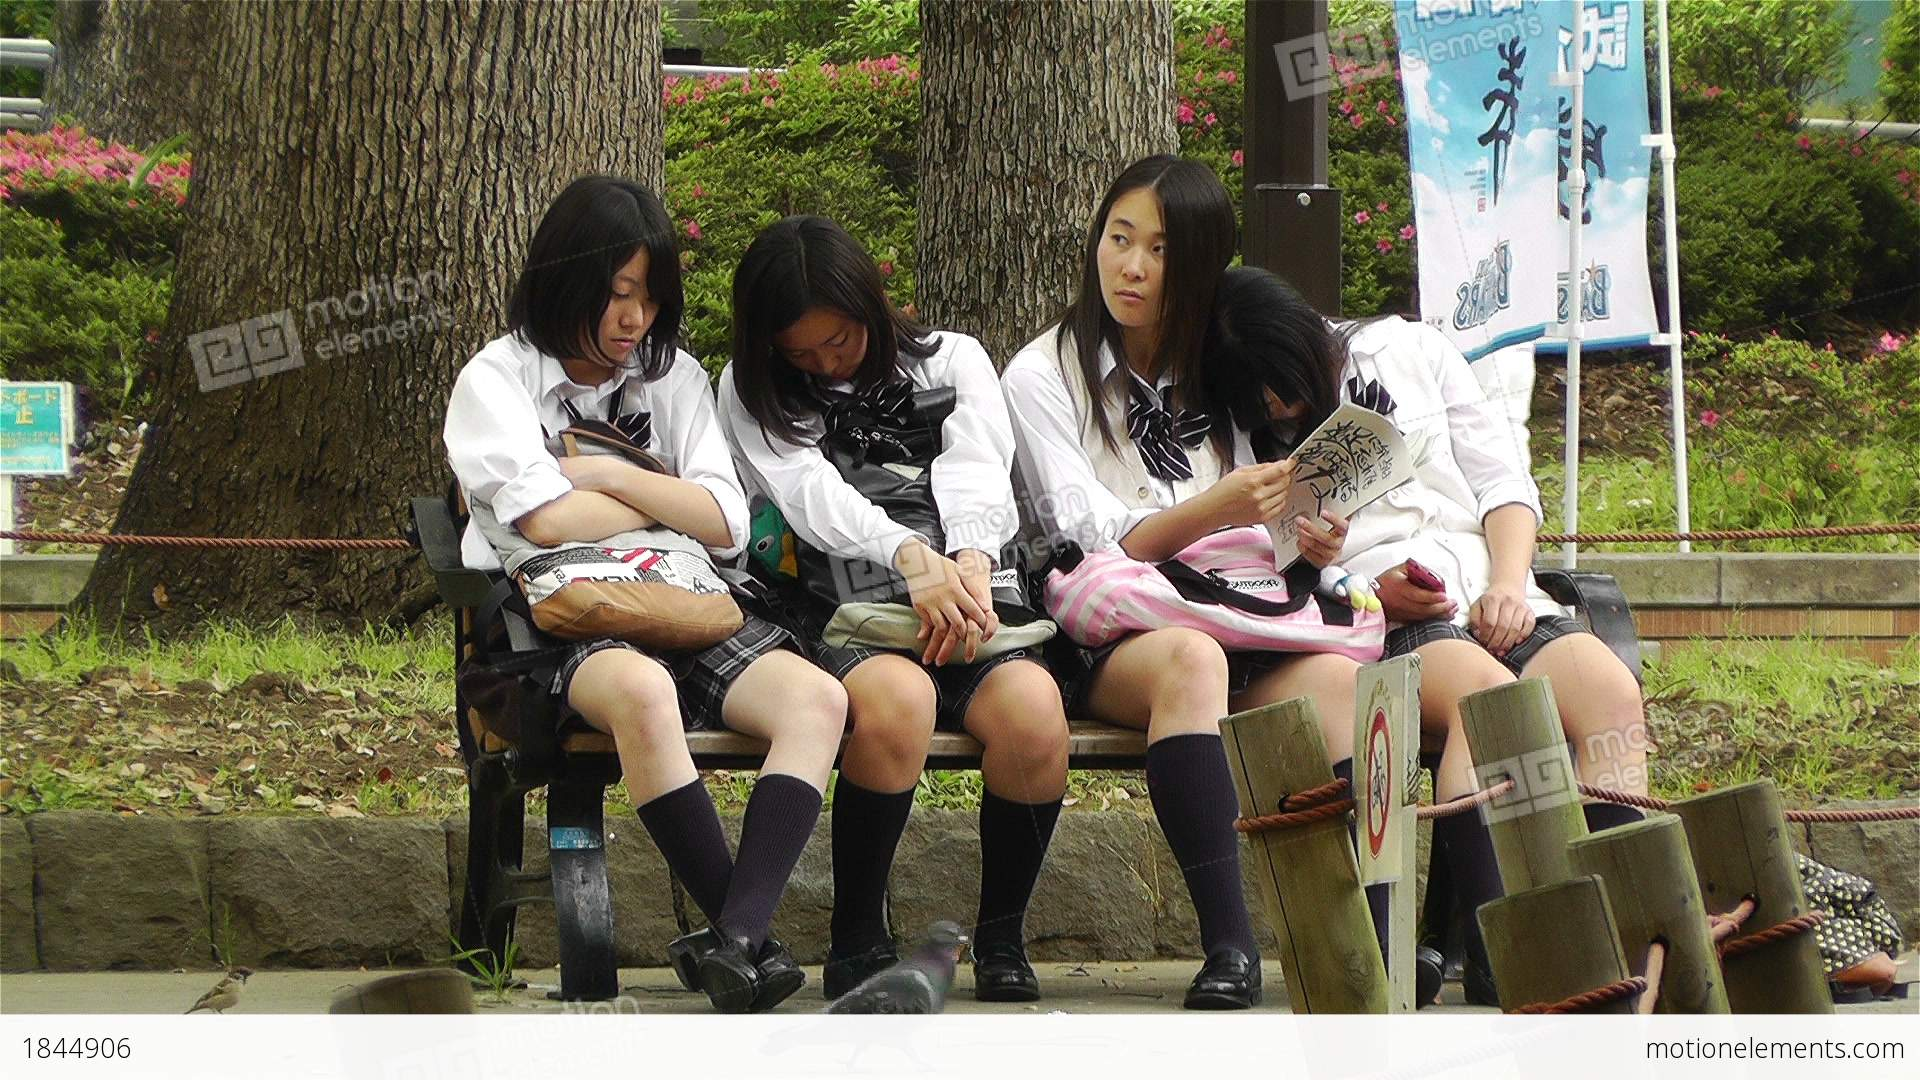 Japanese Schoolgirls Relaxing In Park In Yokohama Japan 11 -8099